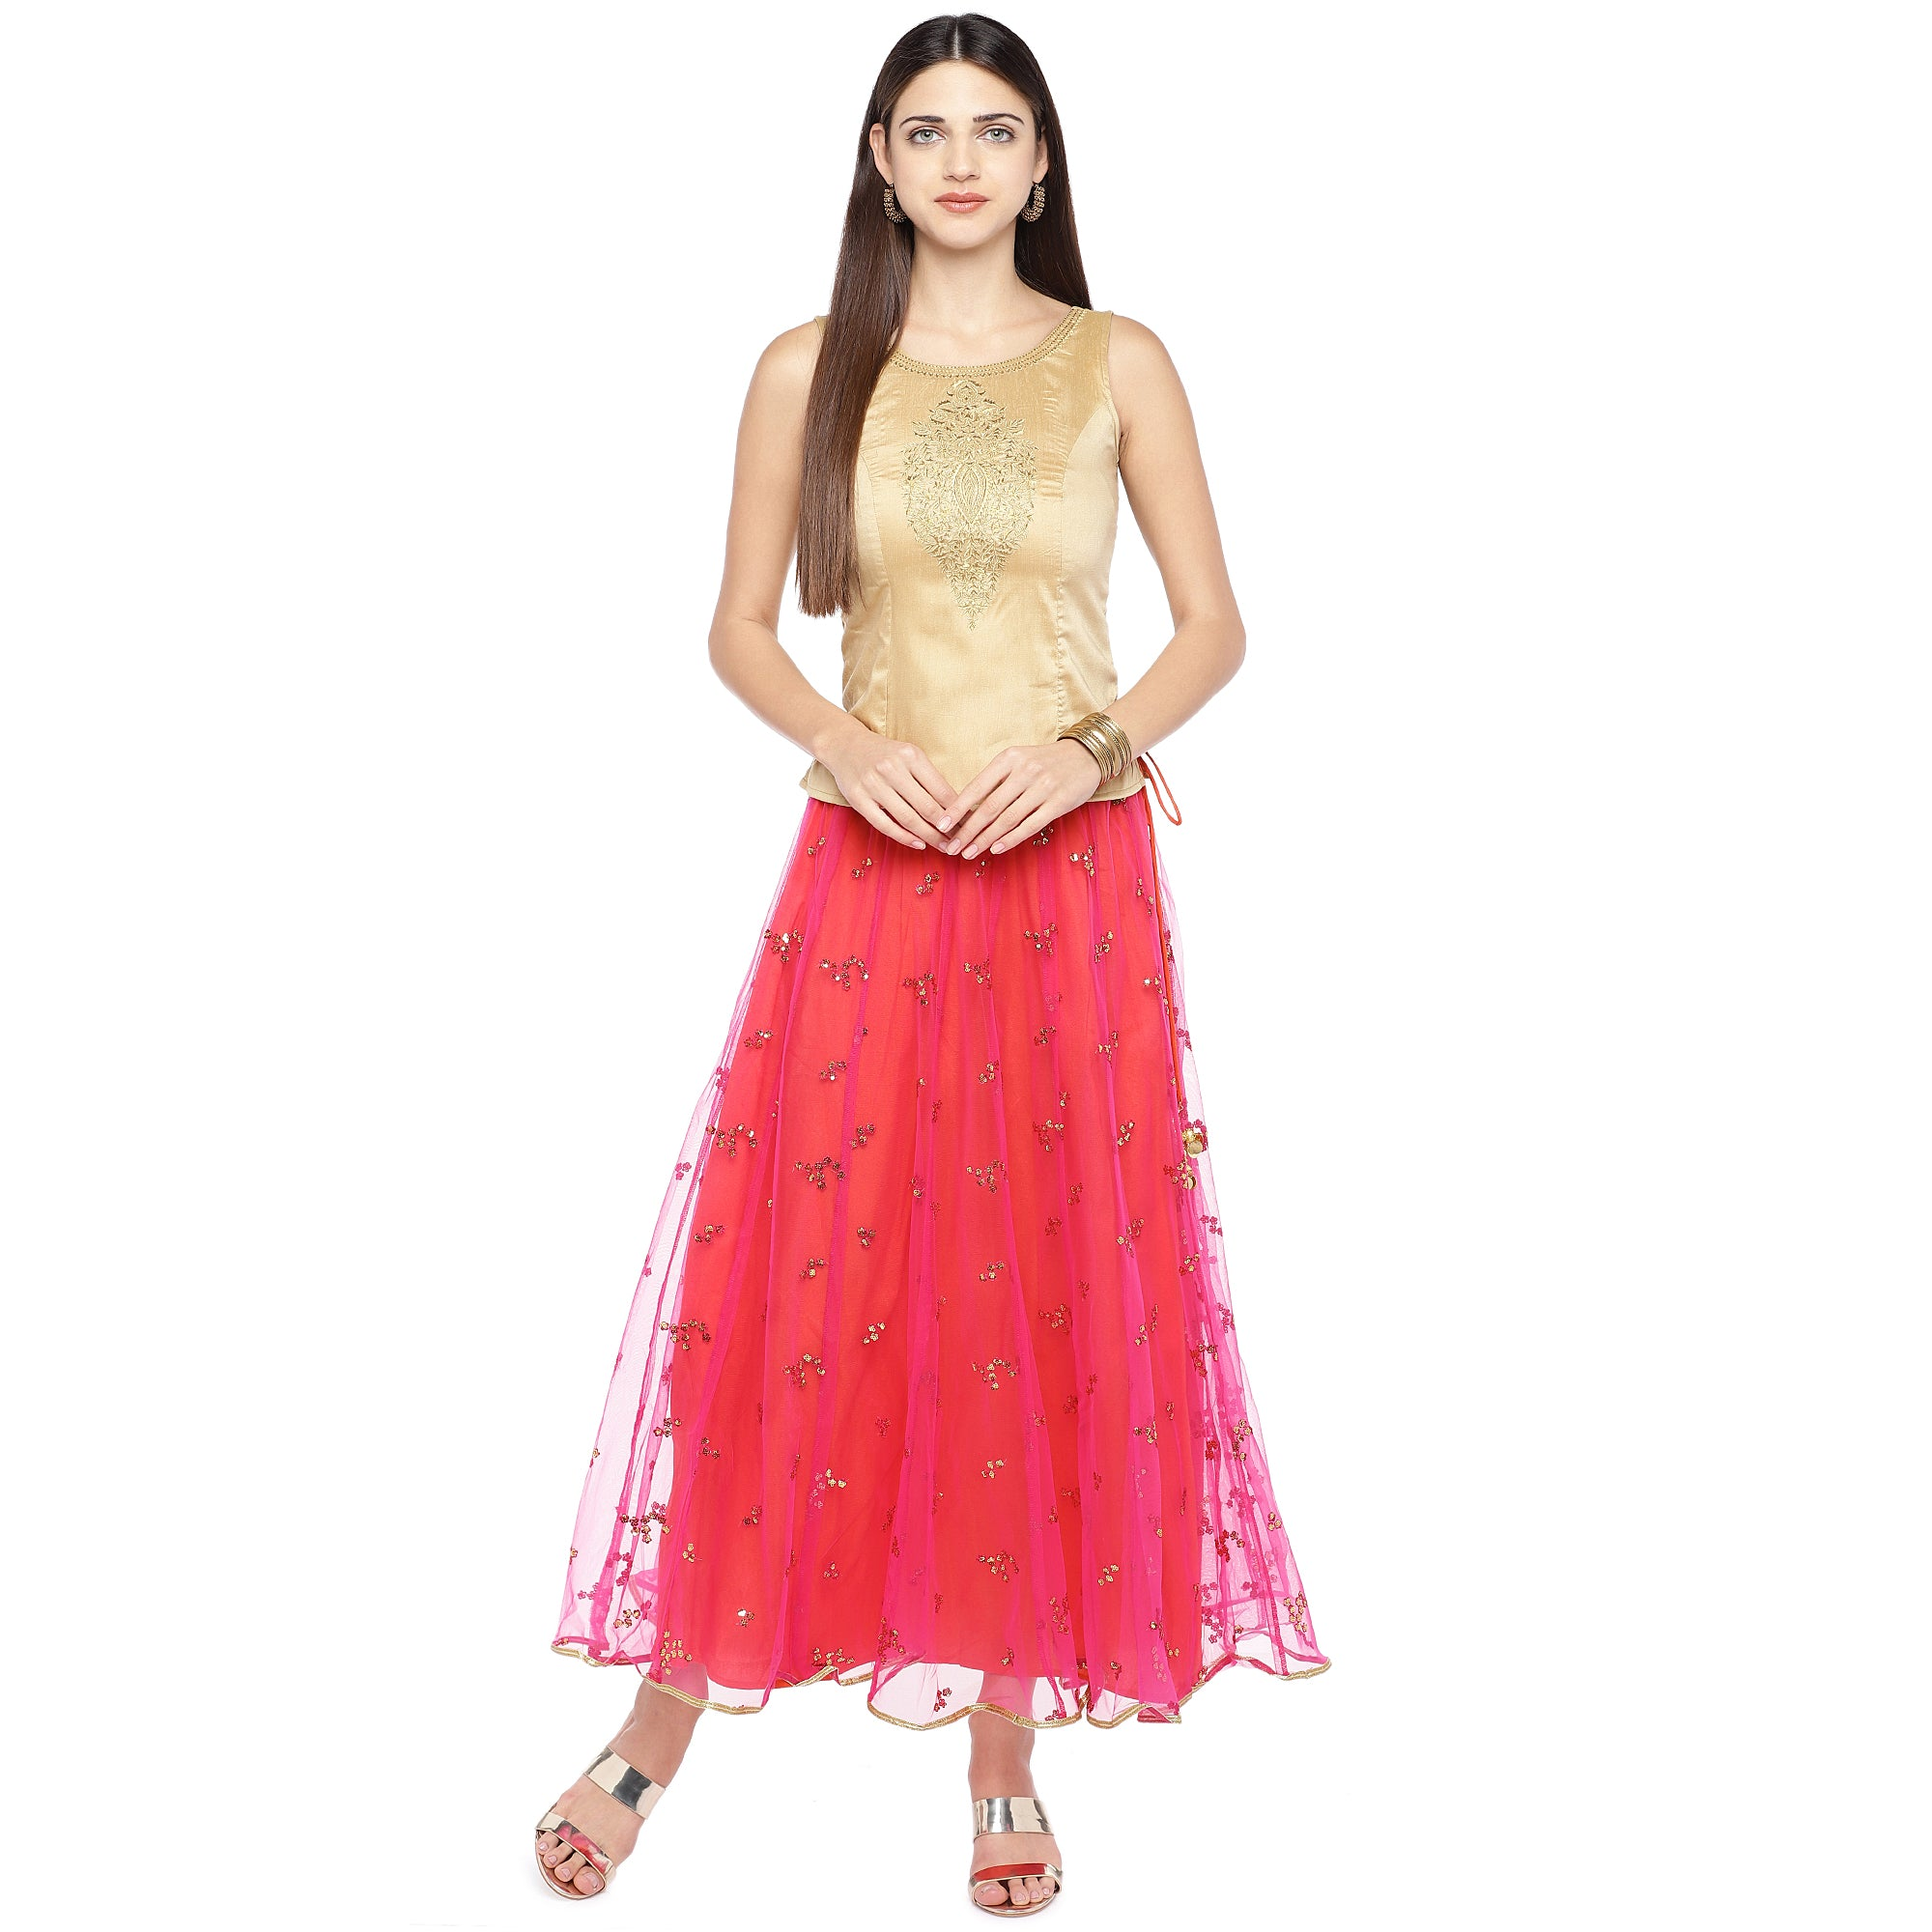 Coral Pink Embellished Flared Maxi Ethnic Skirt-4